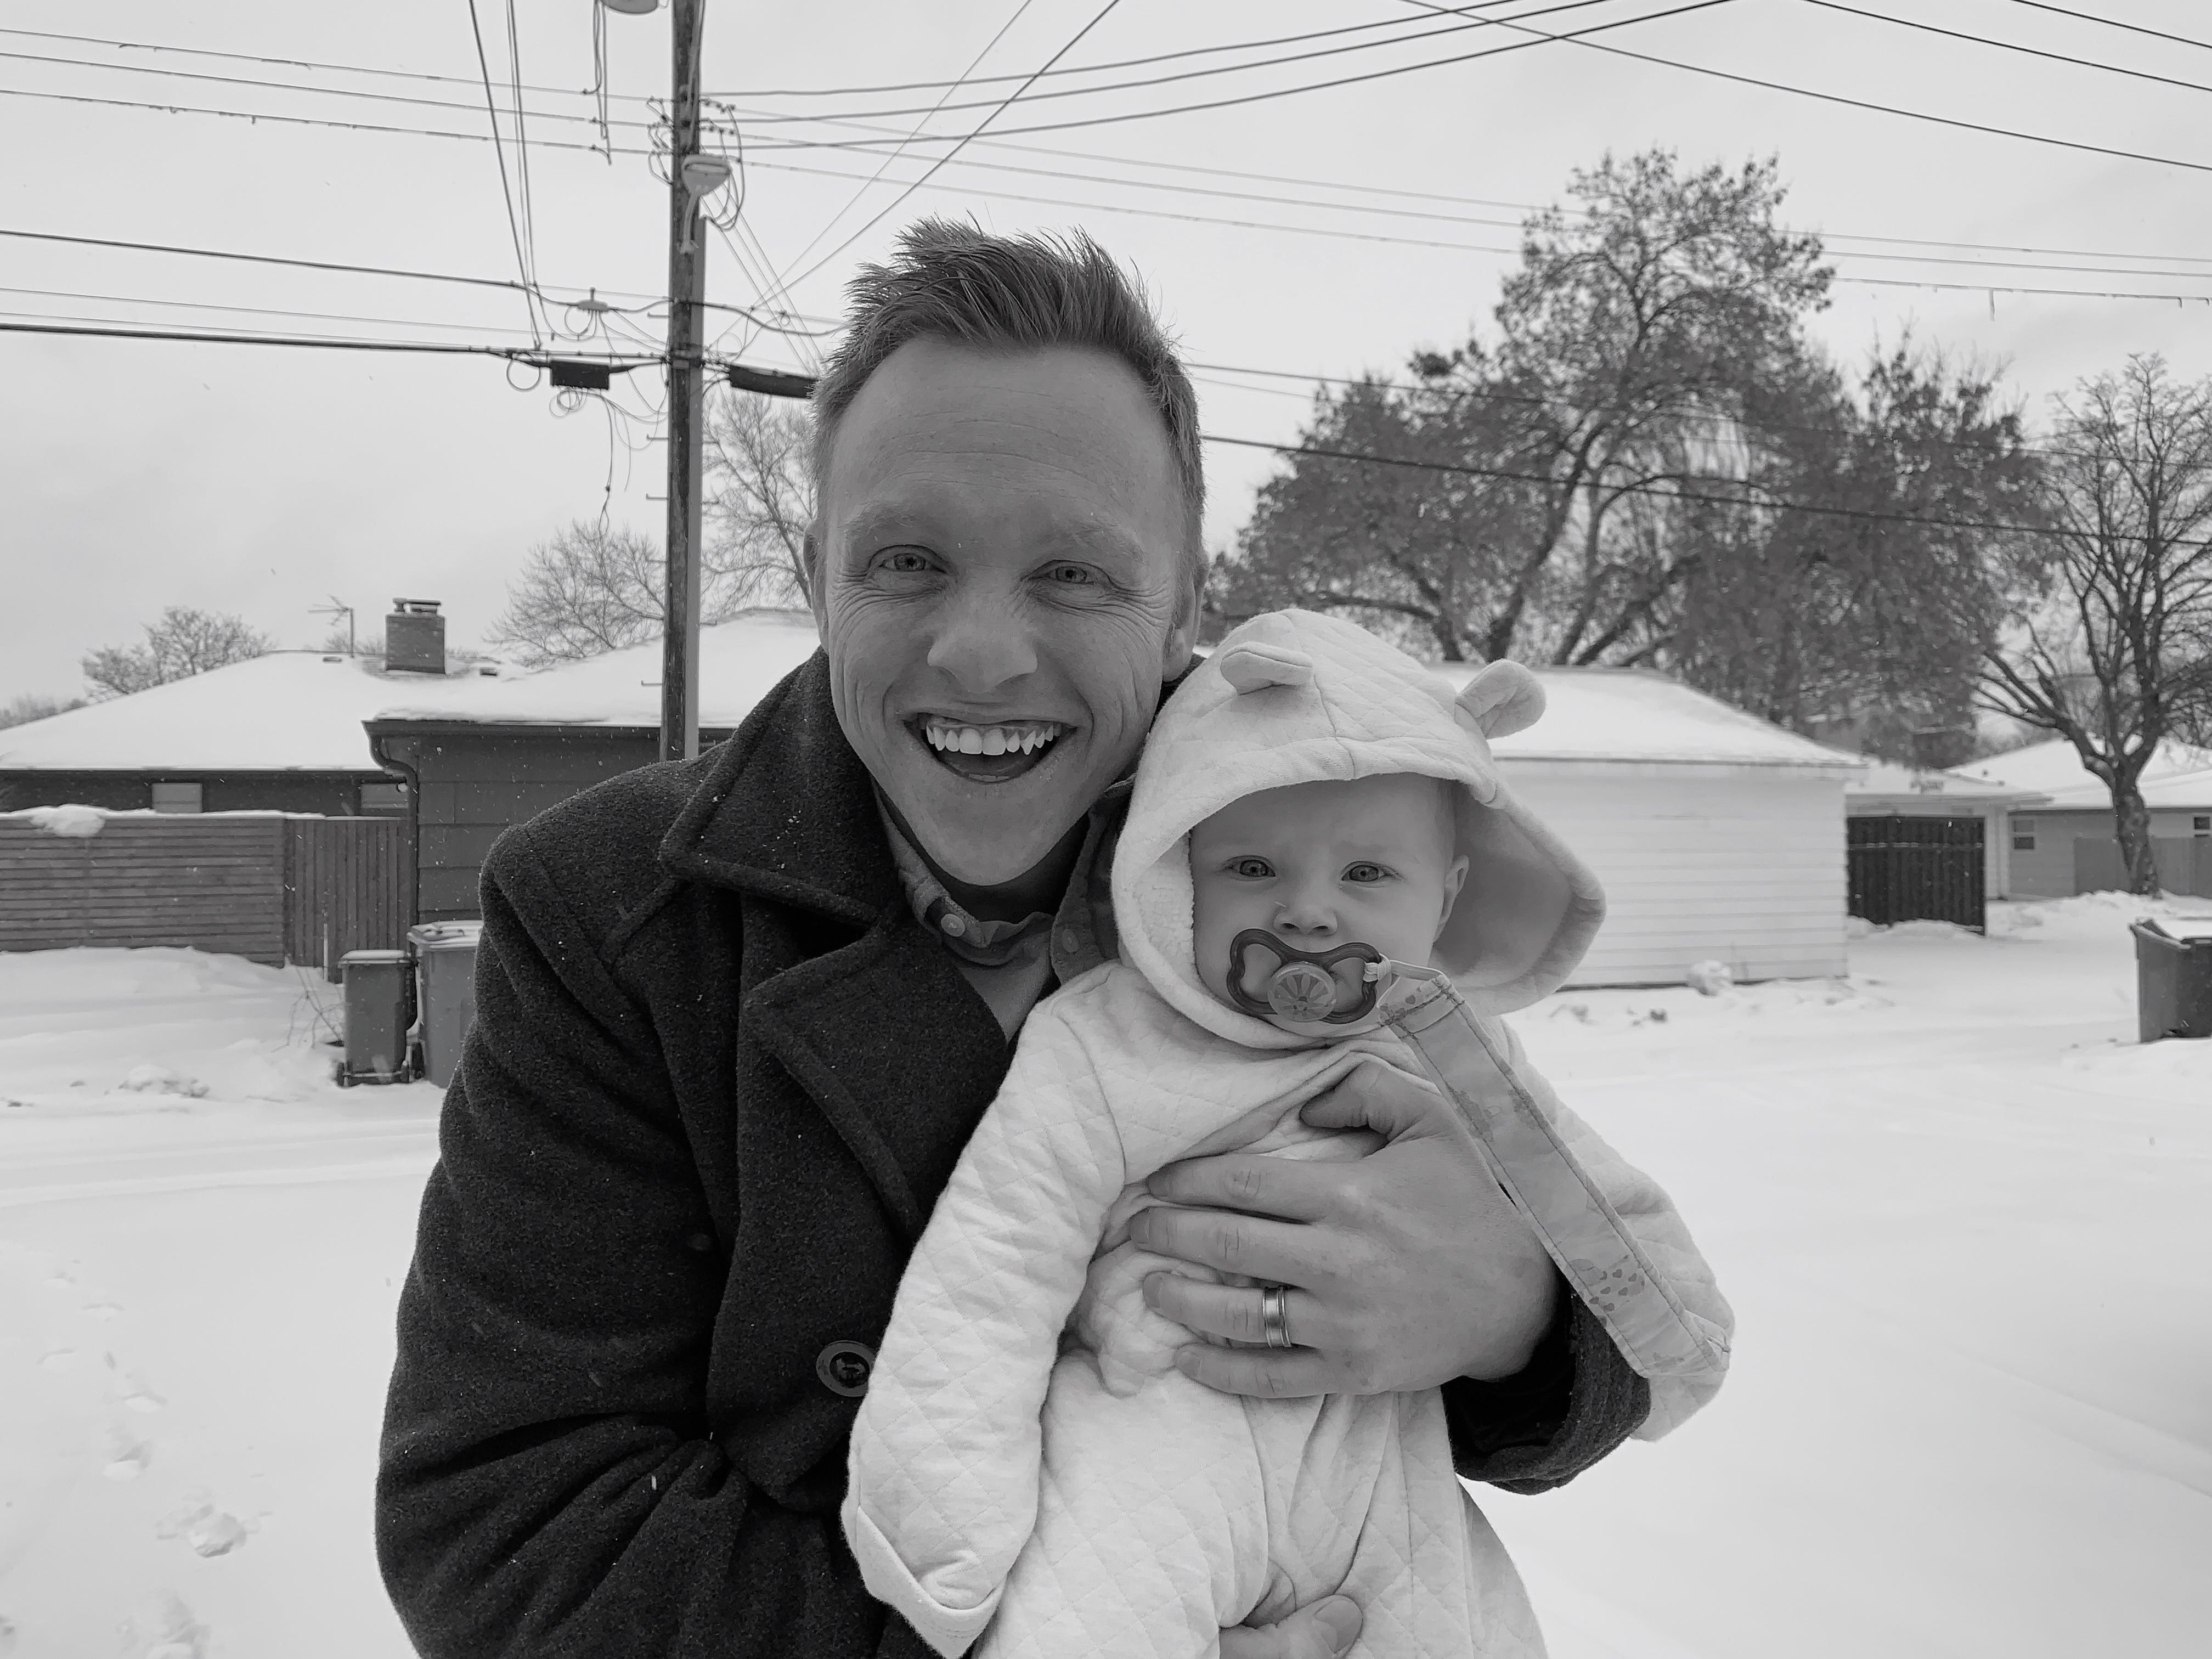 Ellie and I in the snow this week.